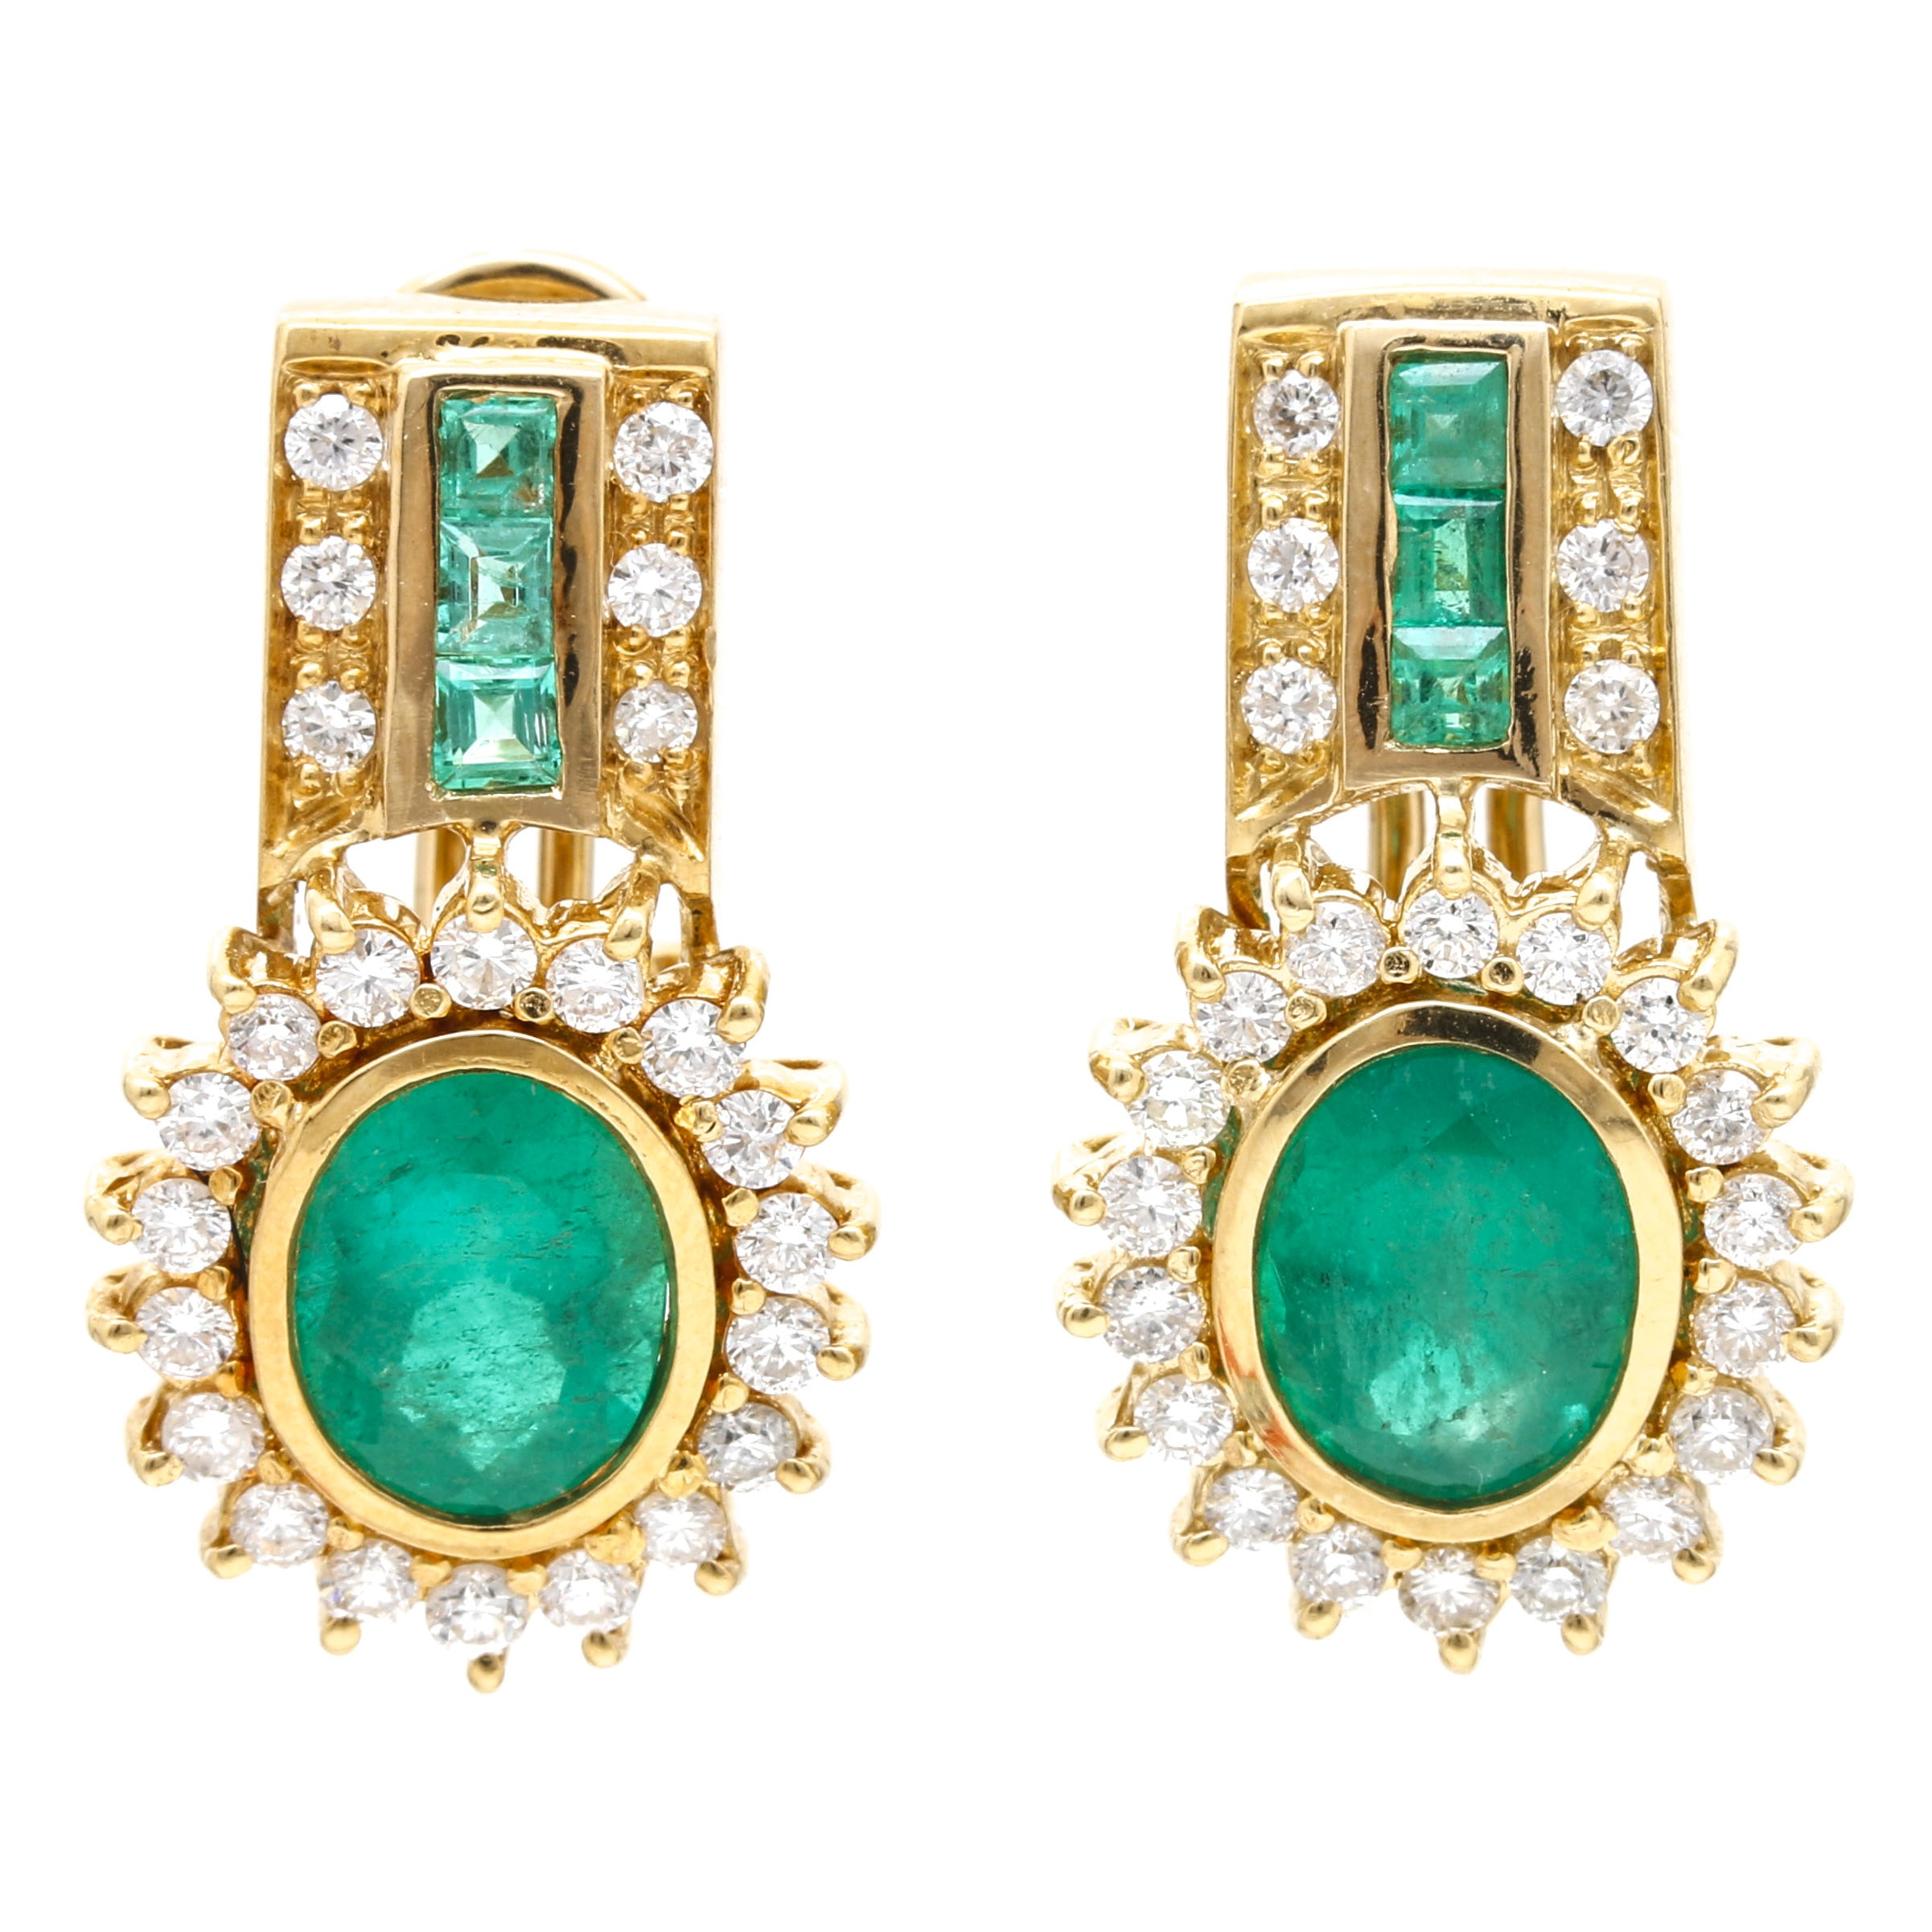 18K Yellow Gold 3.00 CTW Emerald and 0.95 CTW Diamond Earrings